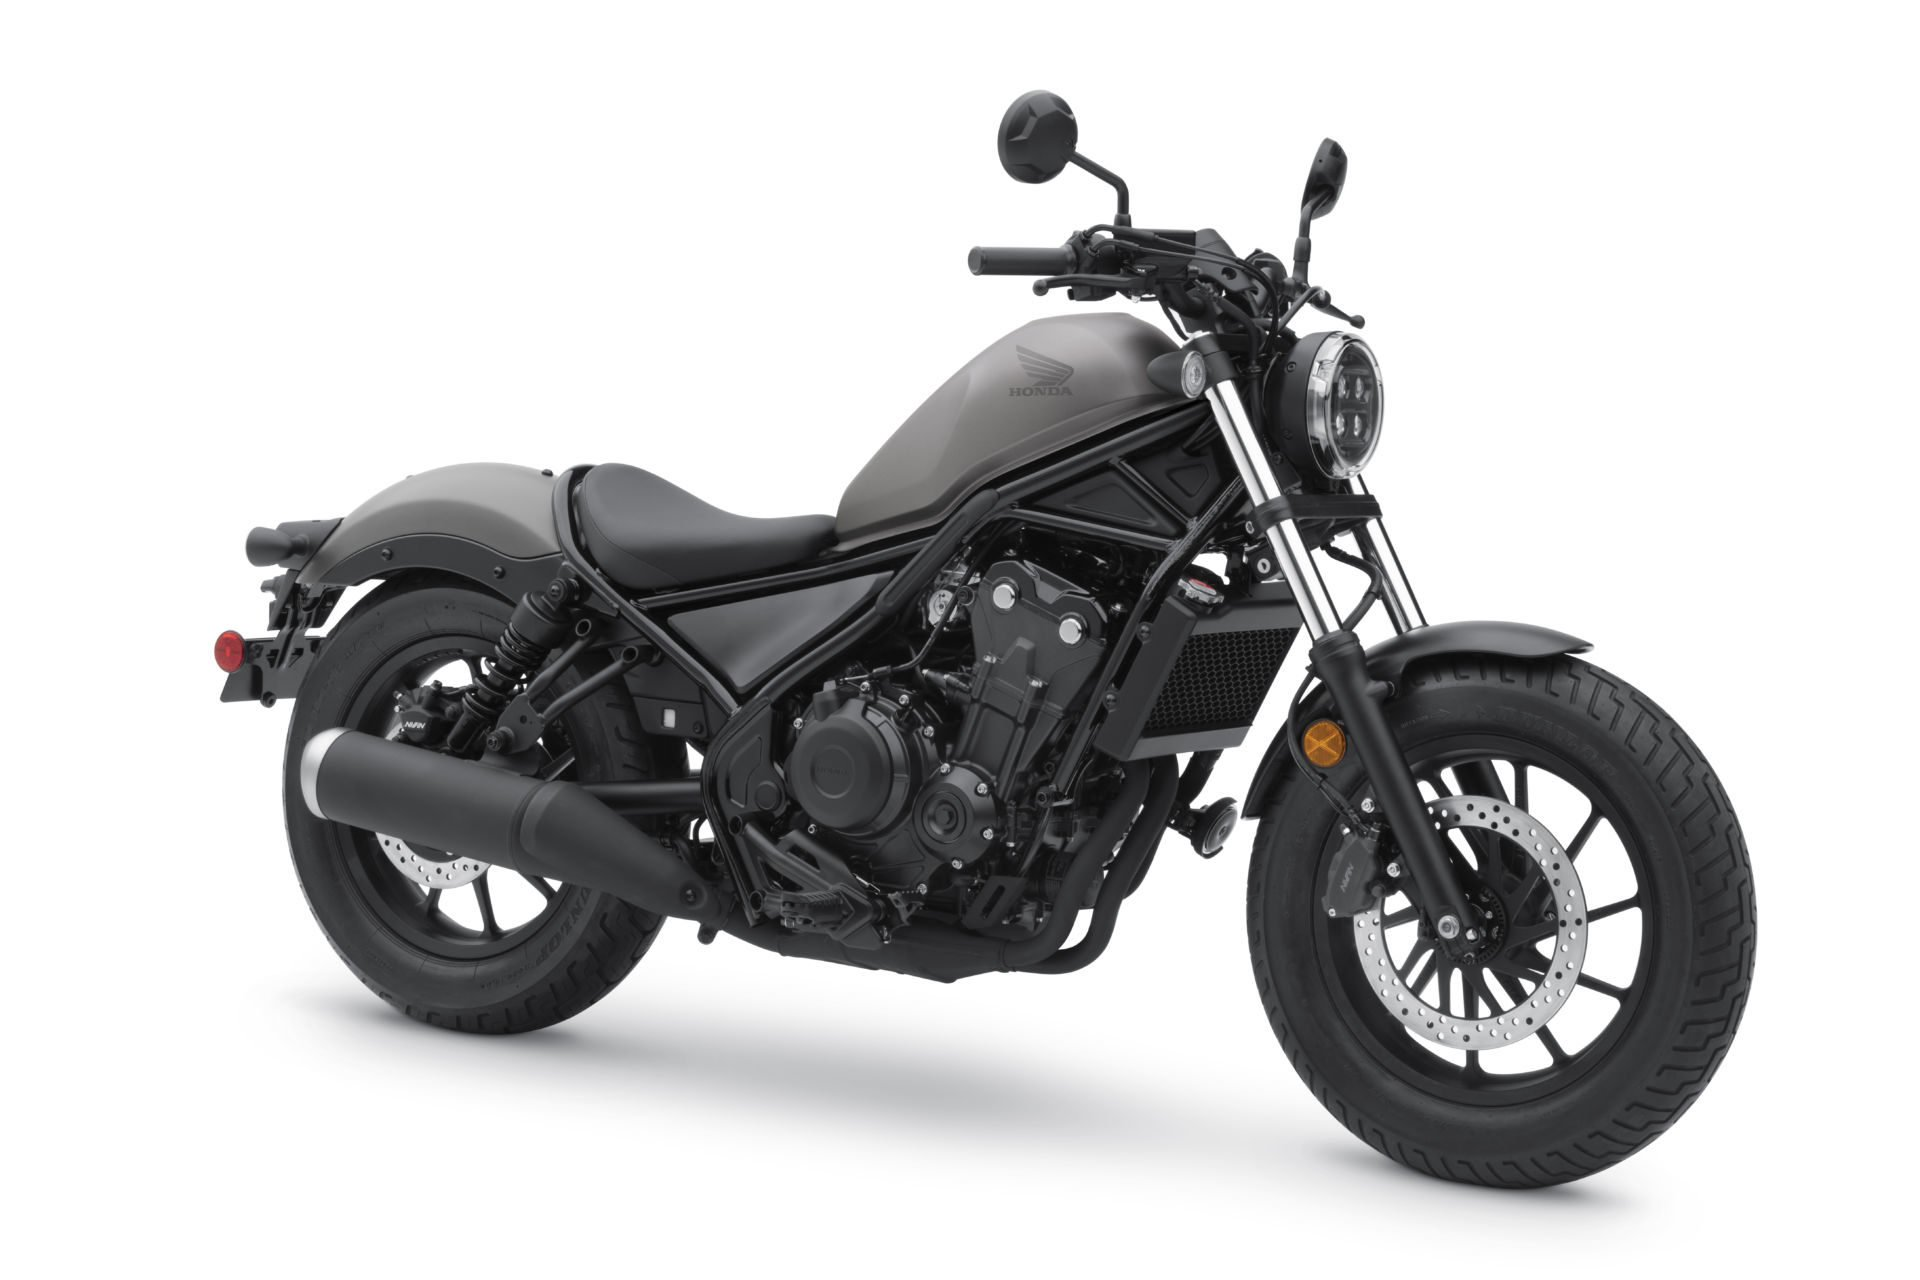 A 2020 Honda Rebel 500. Photo courtesy of American Honda.